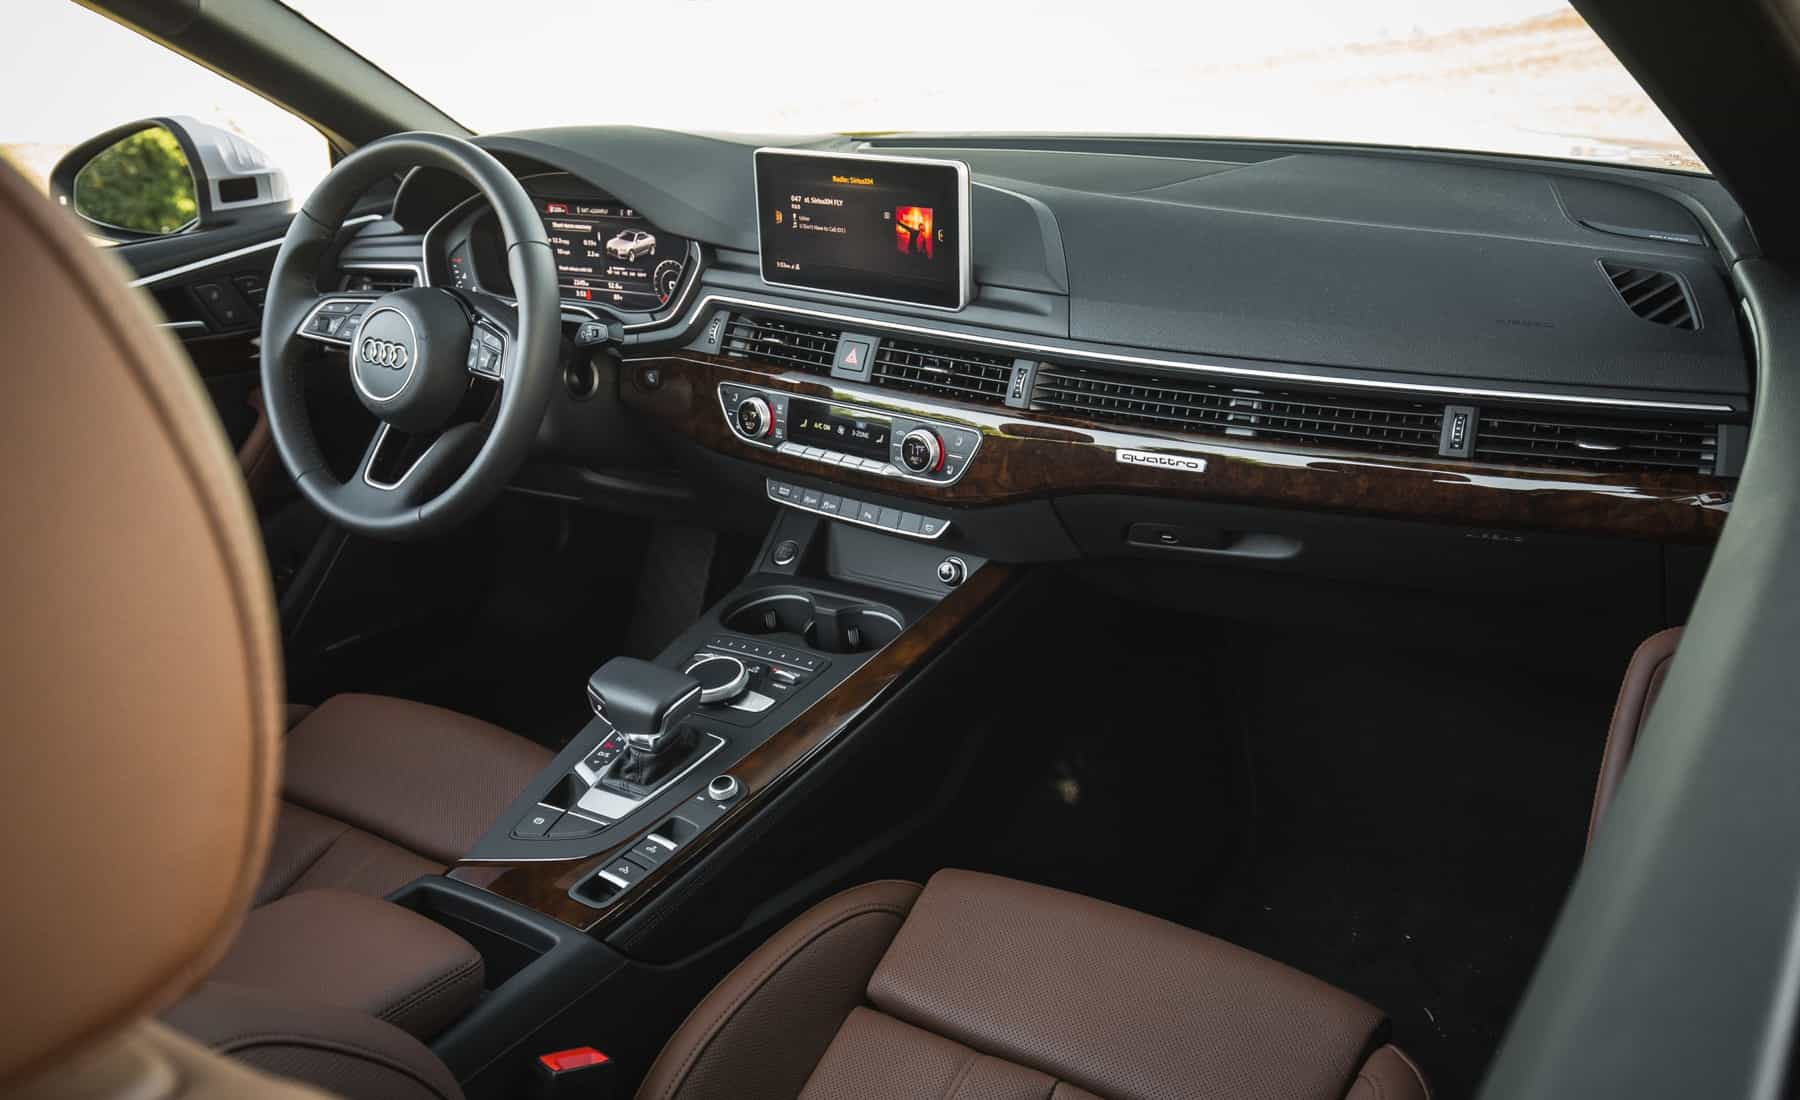 2018 Audi A5 Cabriolet Interior Dashboard (Photo 32 of 45)